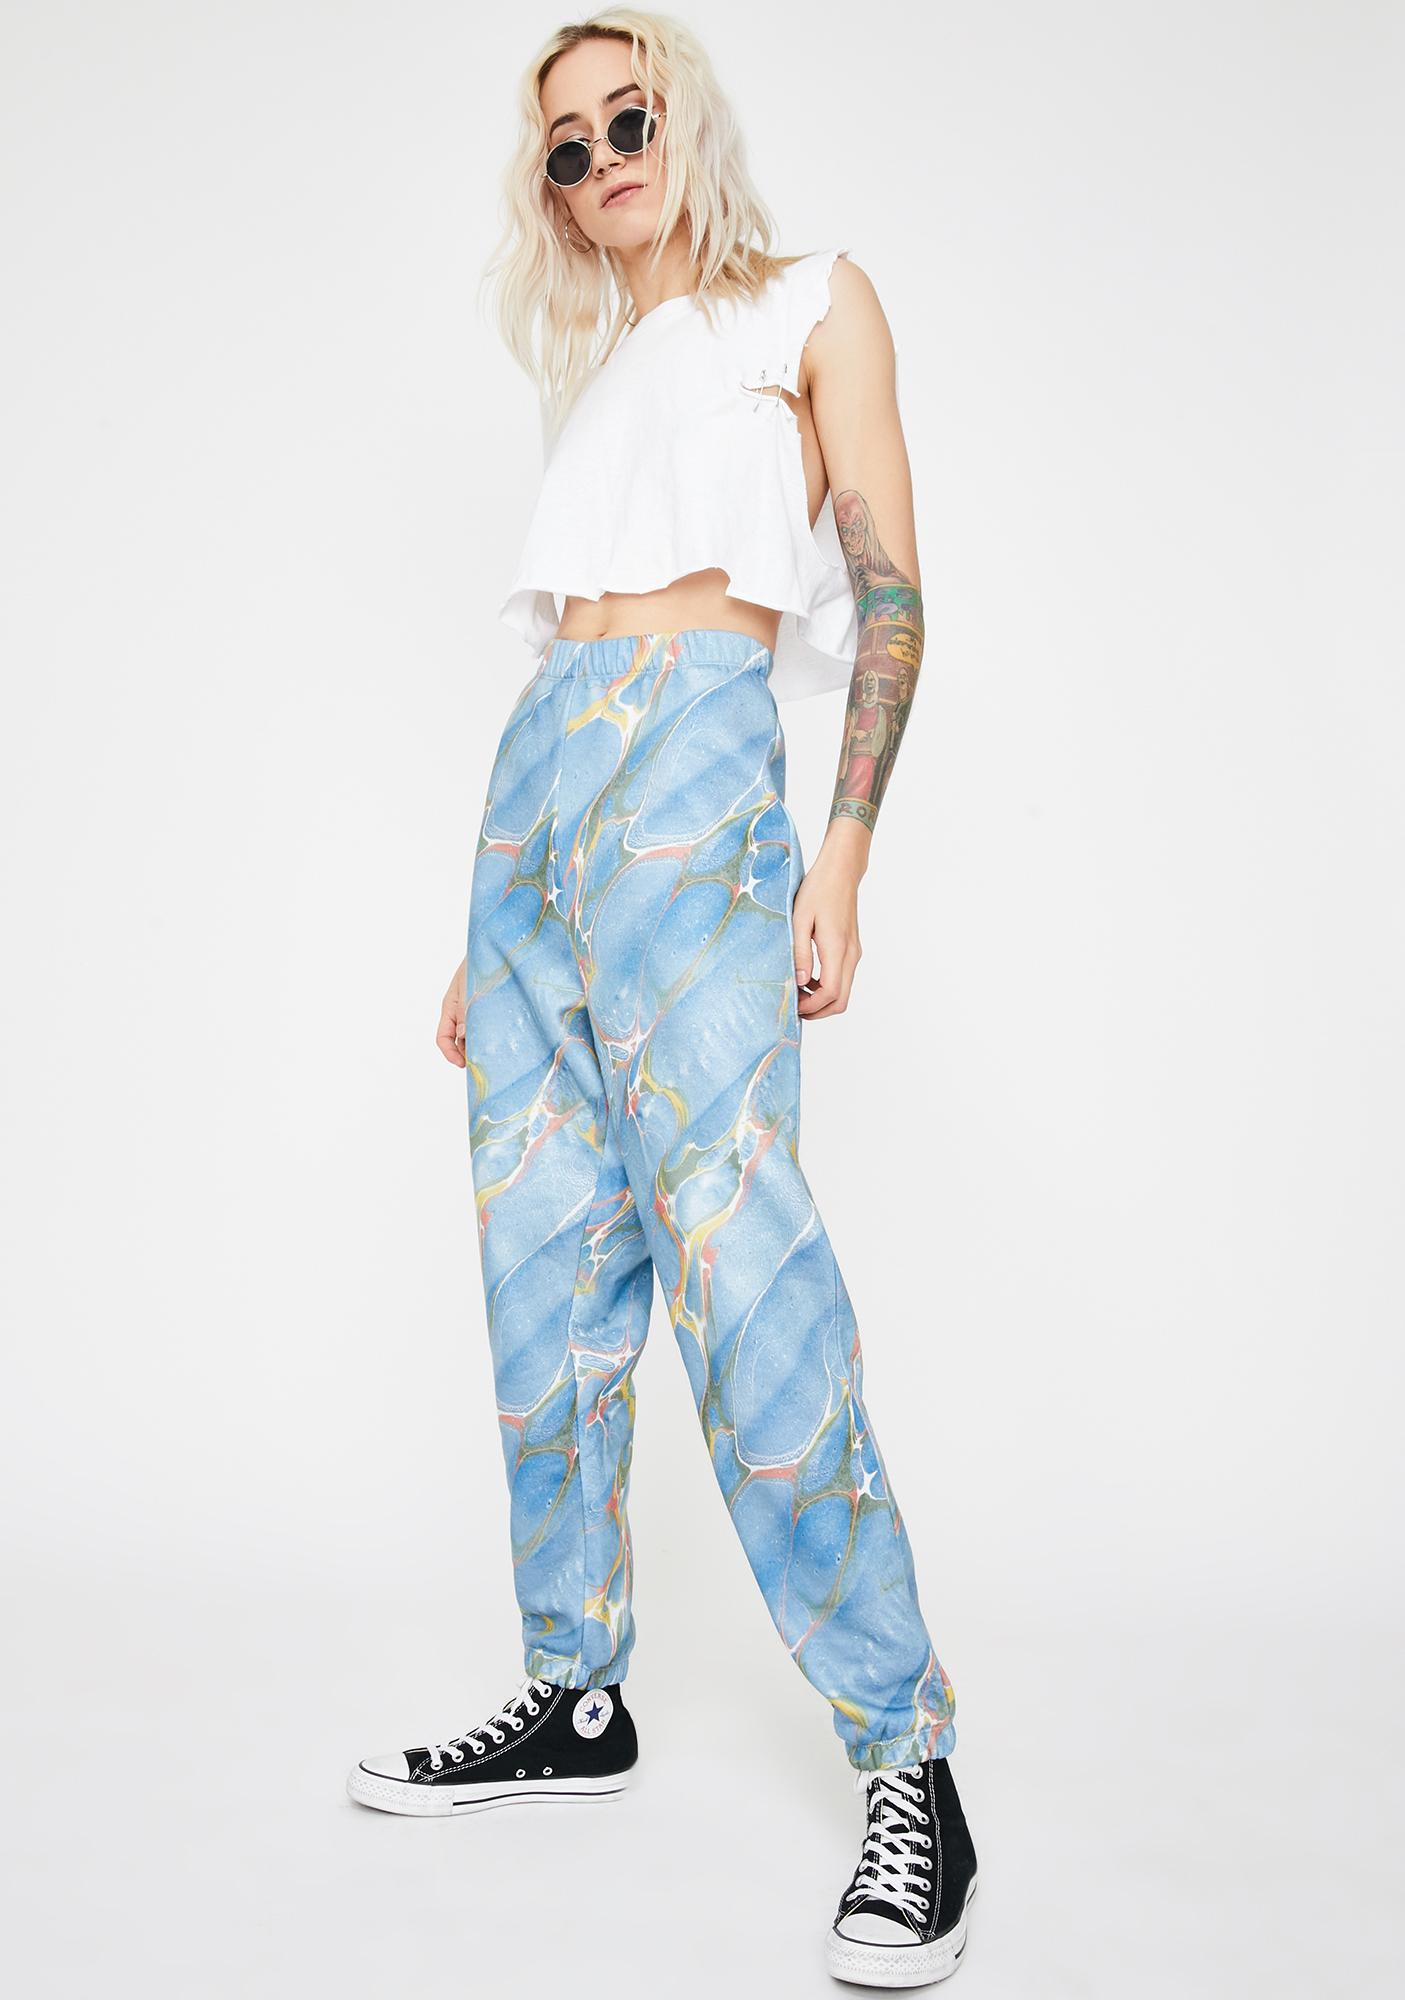 NEW GIRL ORDER Marble Jogger Sweatpants